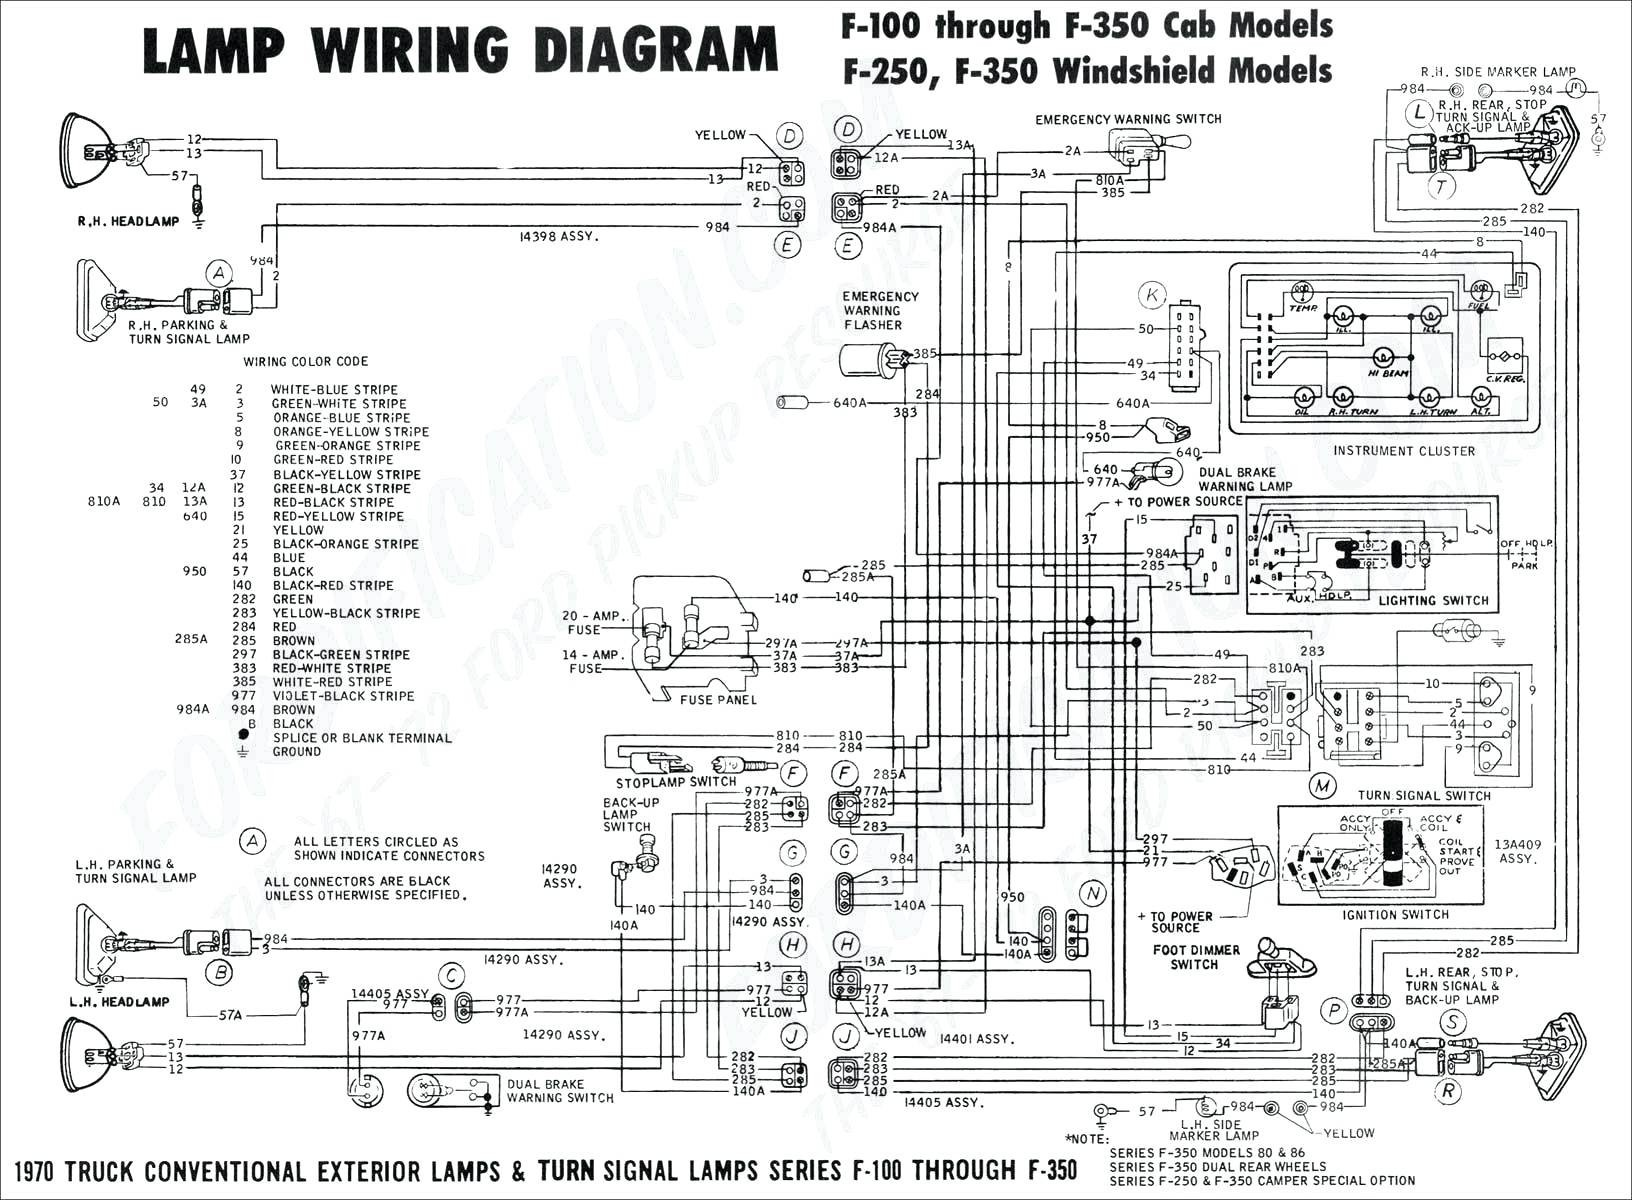 Ignition Coil Diagram ford Ignition Switch Wiring Diagram Fresh top Car Brake Diagram Rear Of Ignition Coil Diagram Boat Ignition Switch Wiring Diagram Wiring Diagrams